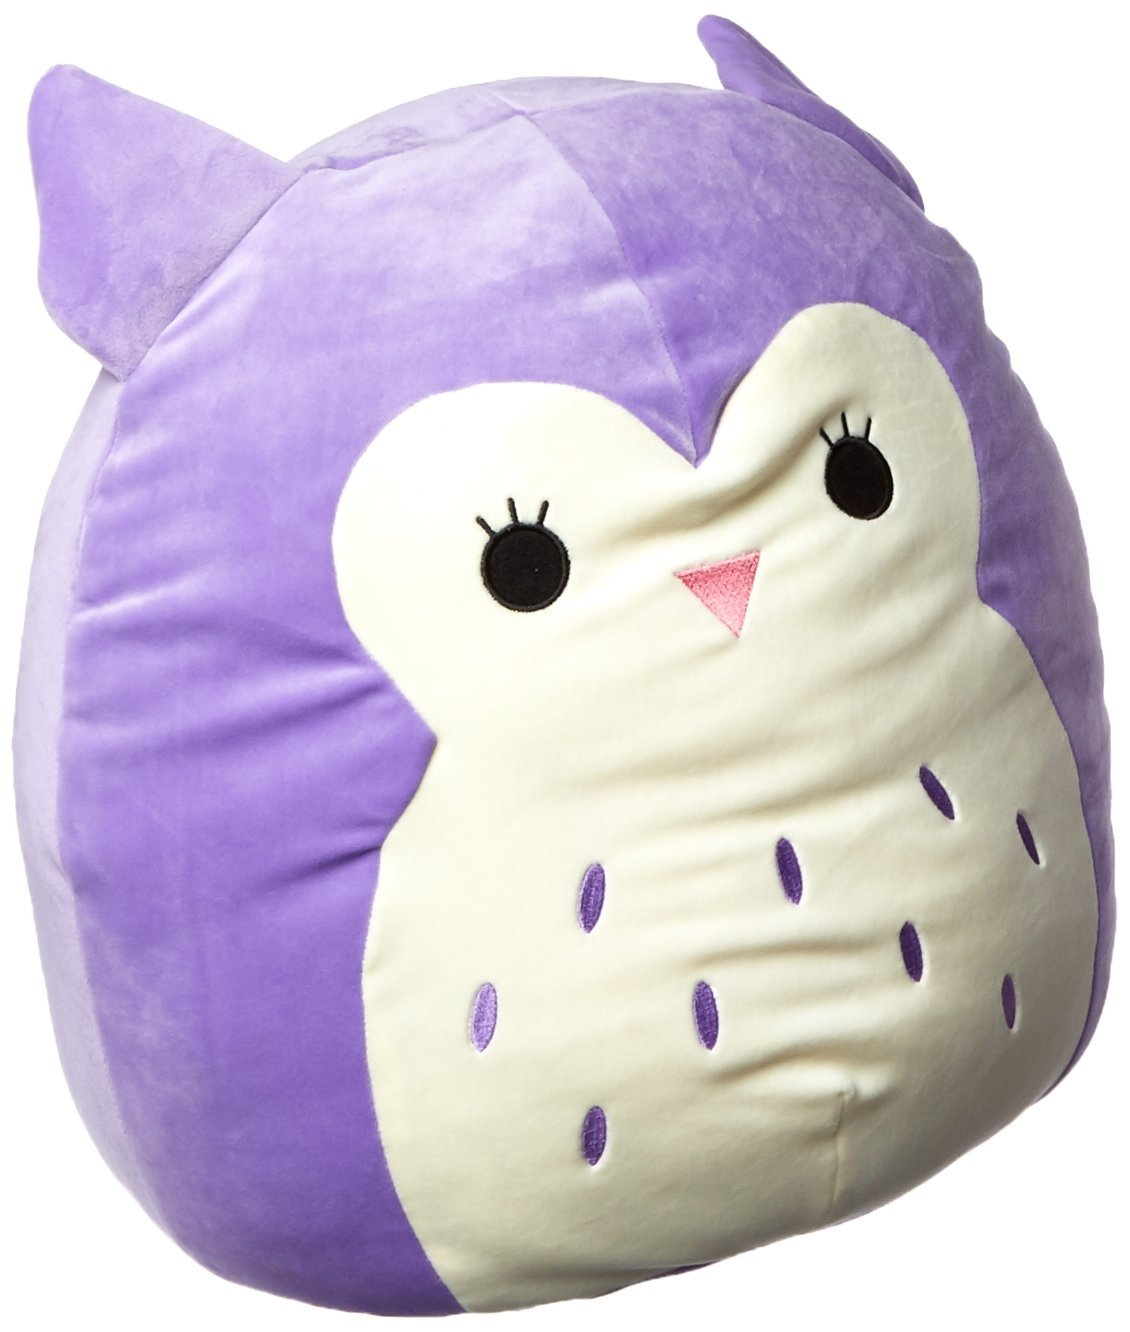 SQUISHMALLOW Holly The Owl Pillow Stuffed Animal, Purple, 16''